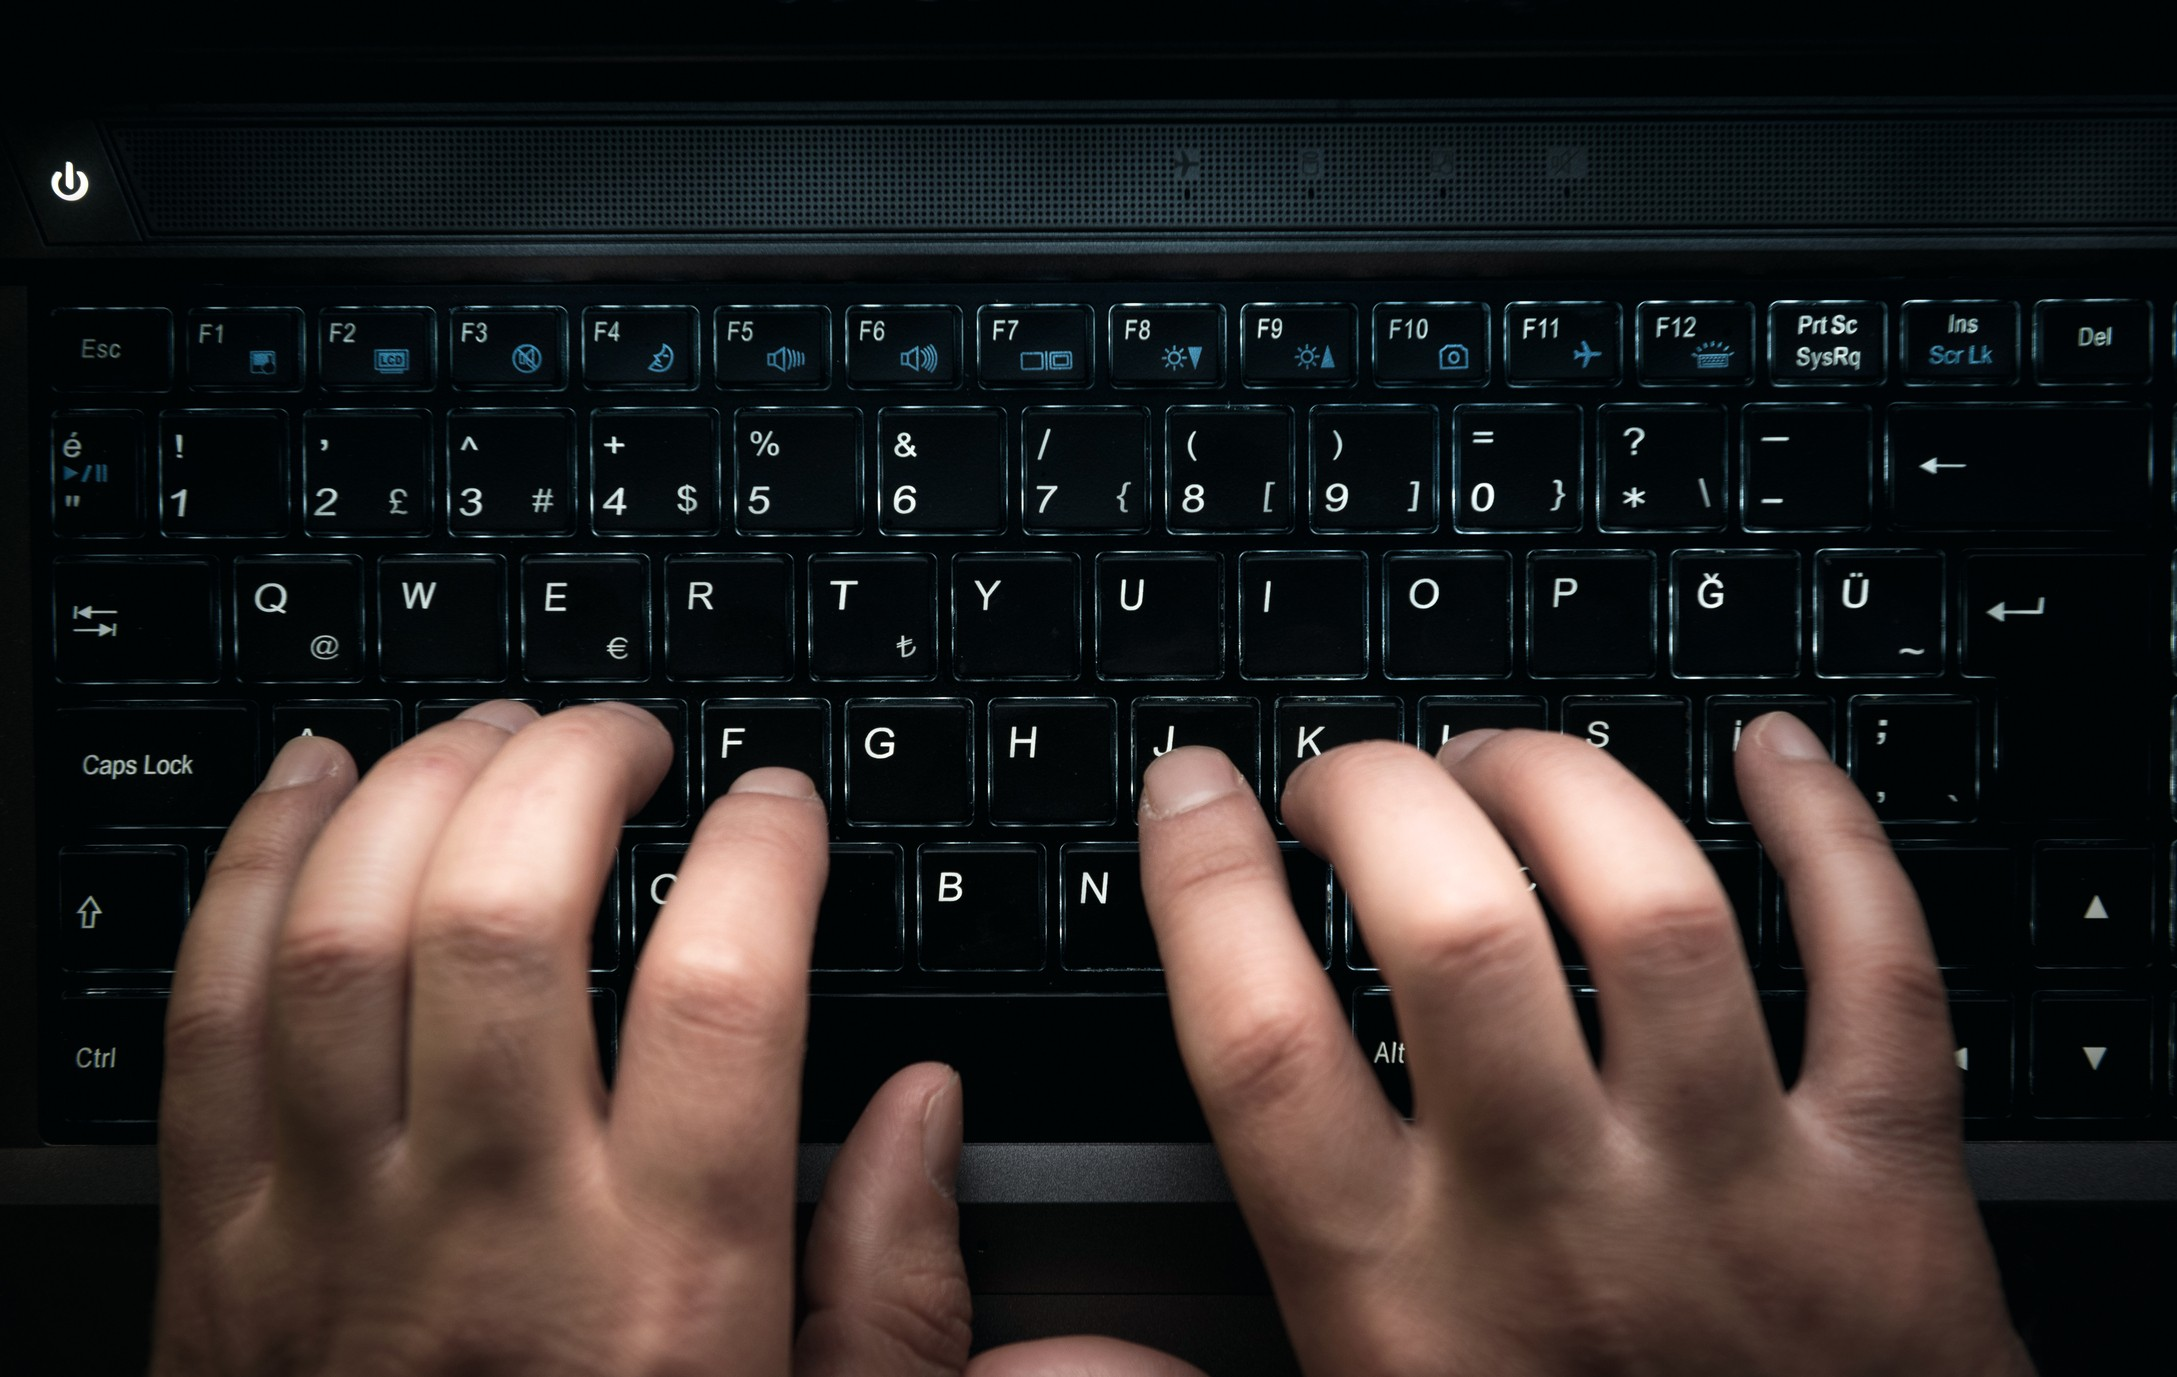 Hands on Laptop keyboard high quality and high resolution studio shoot